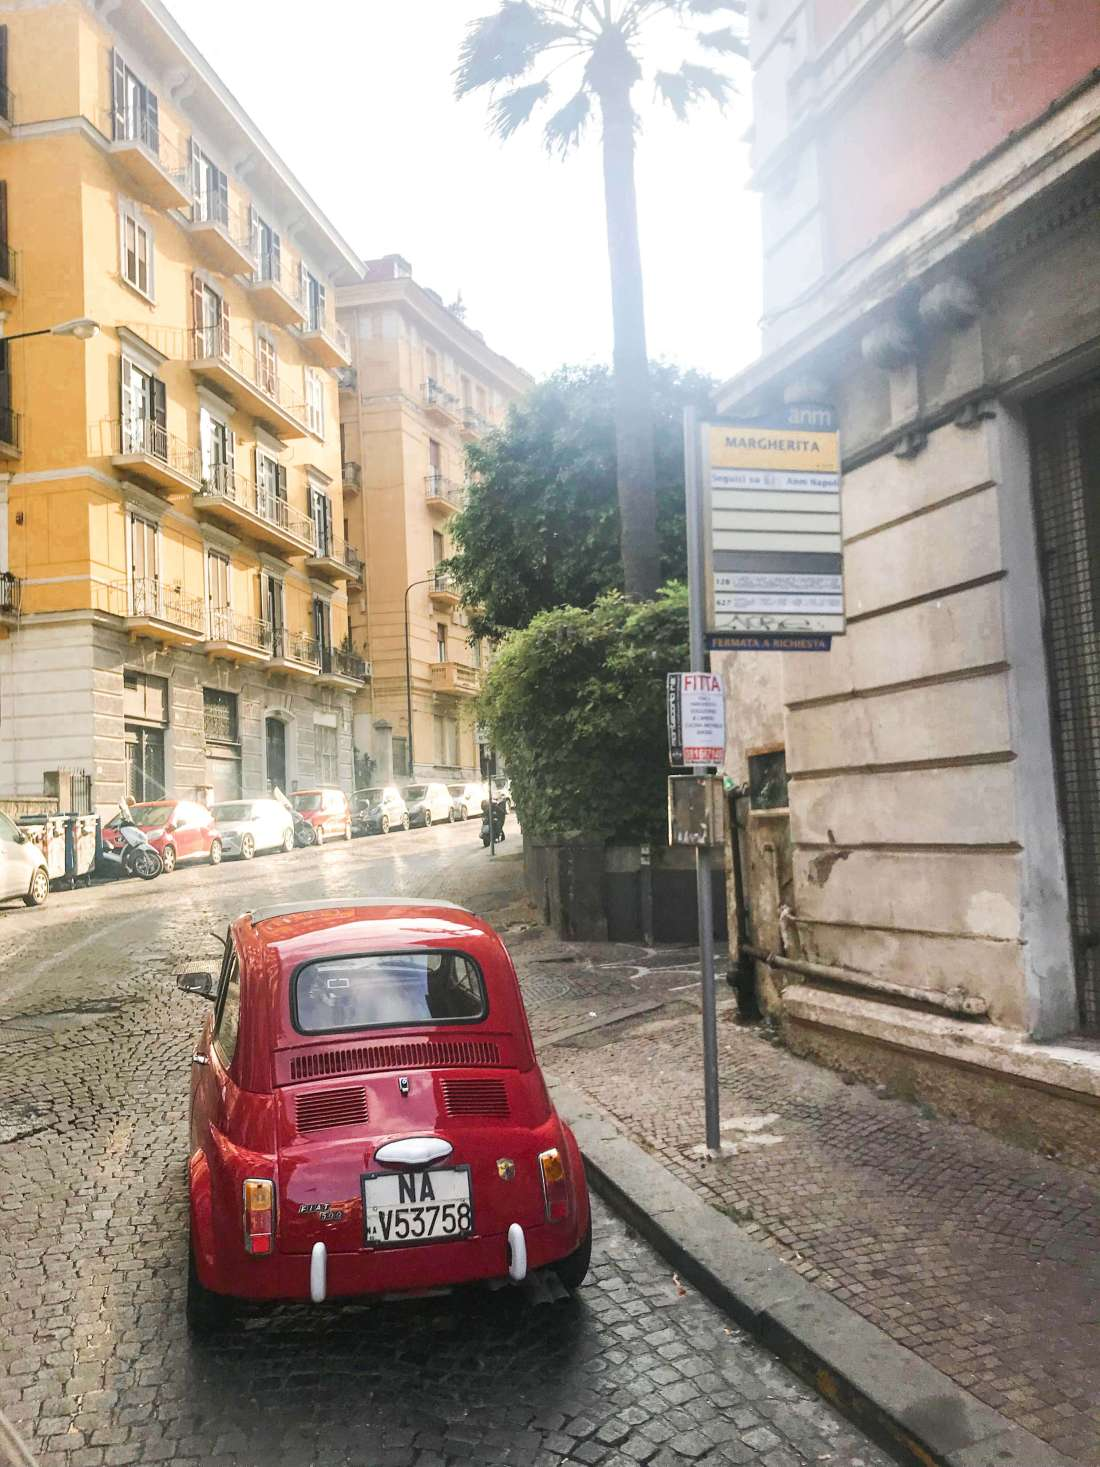 week-end a napoli low cost-corso vittorio emanuele